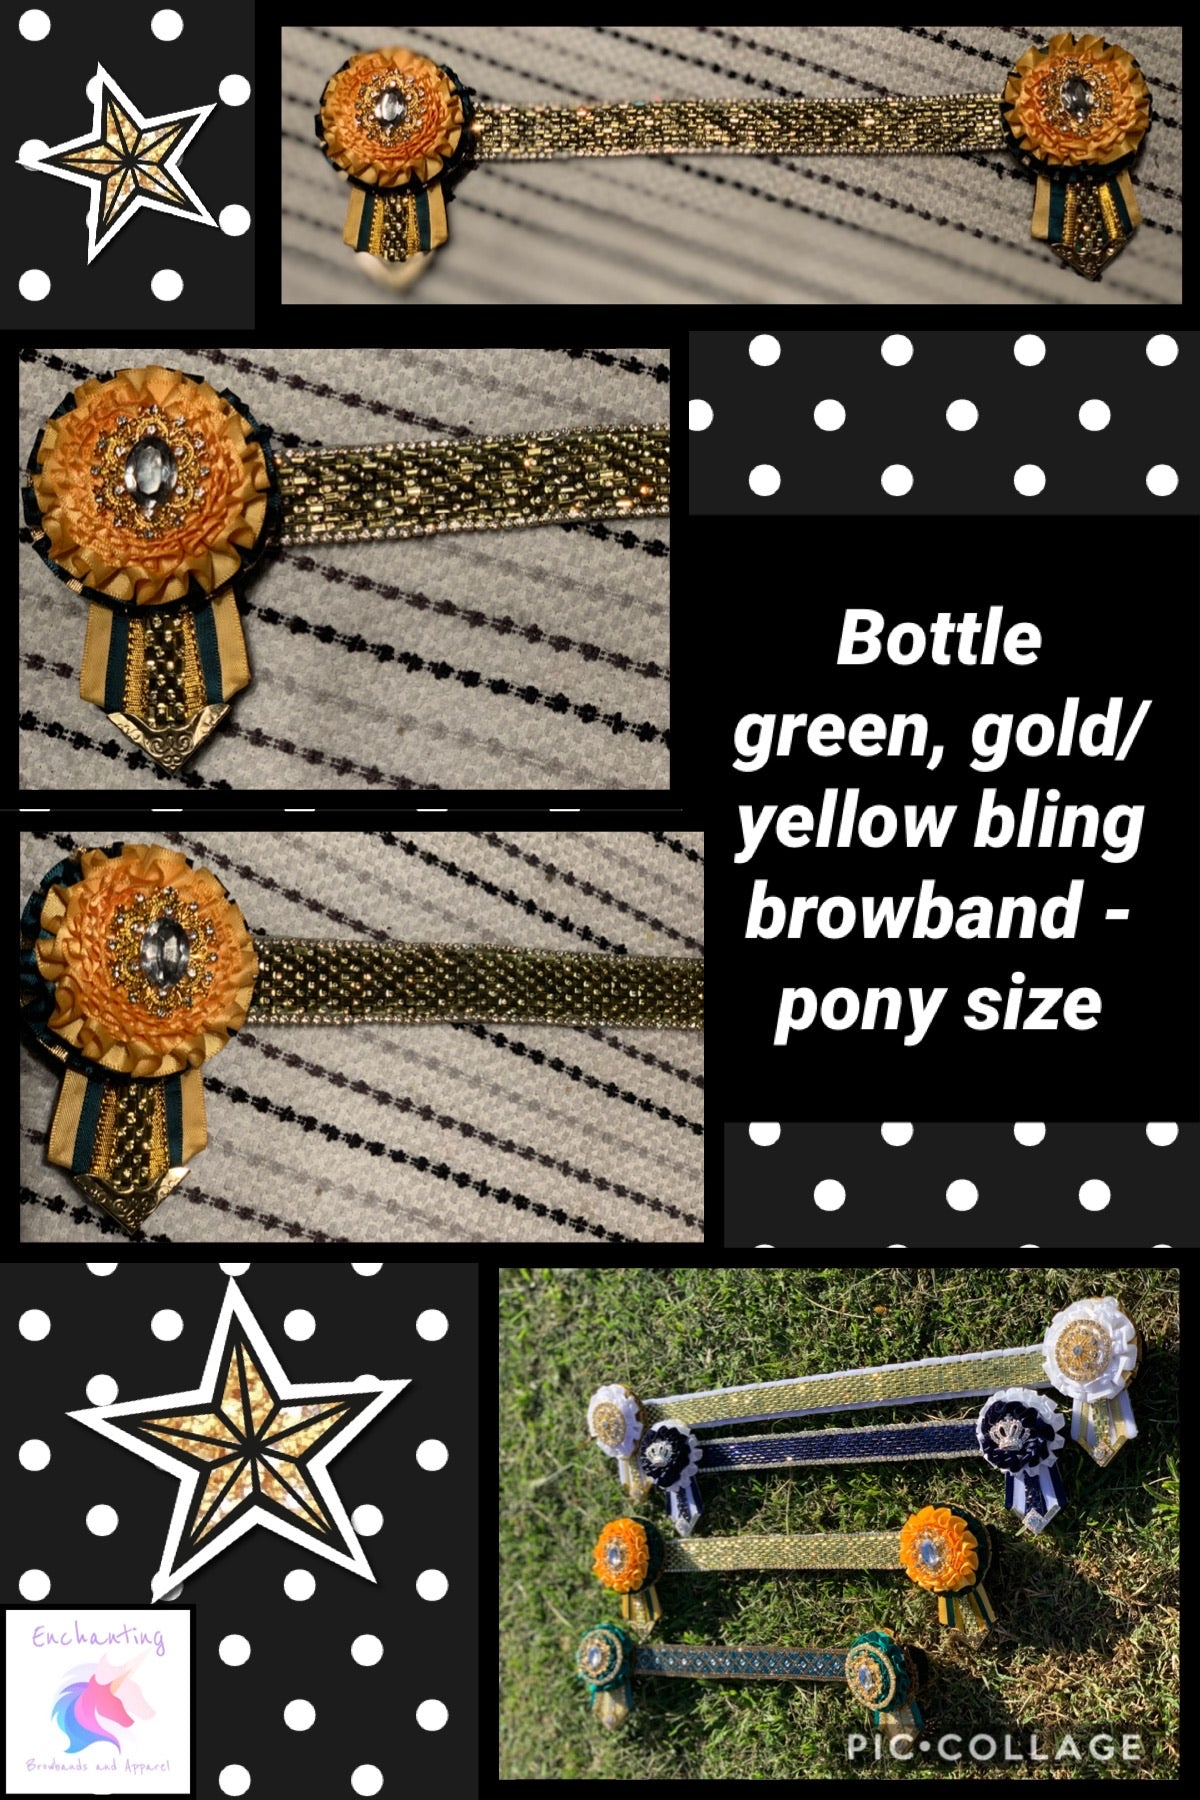 Bottle green, yellow/gold bling browband